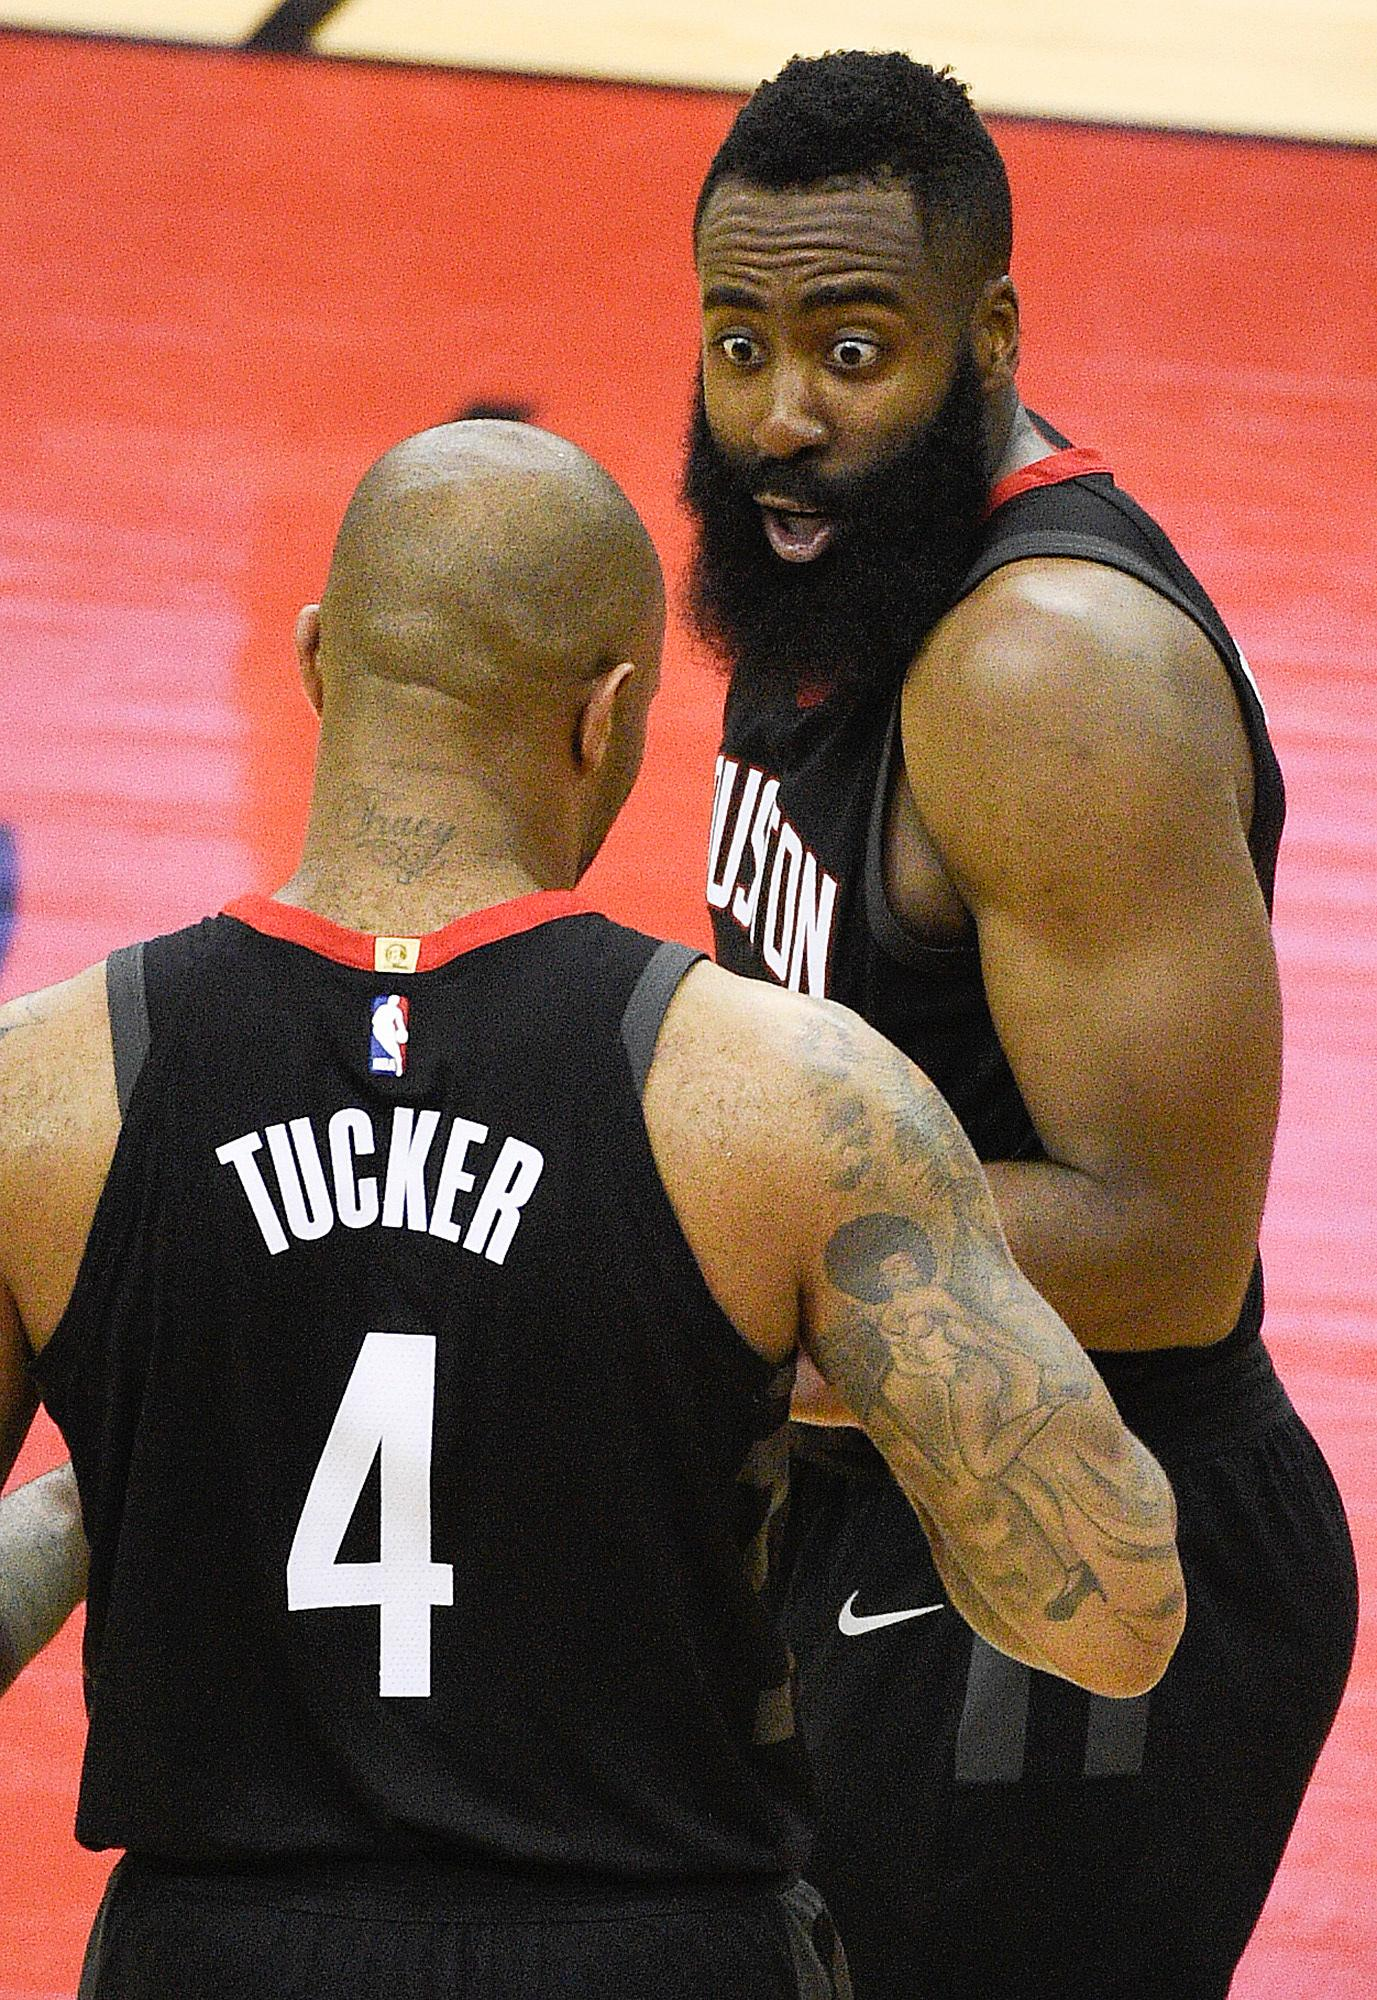 When you look at the box score and see PJ Tucker has as many points as Steph and Klay combined https://t.co/8tfs5DZpXY